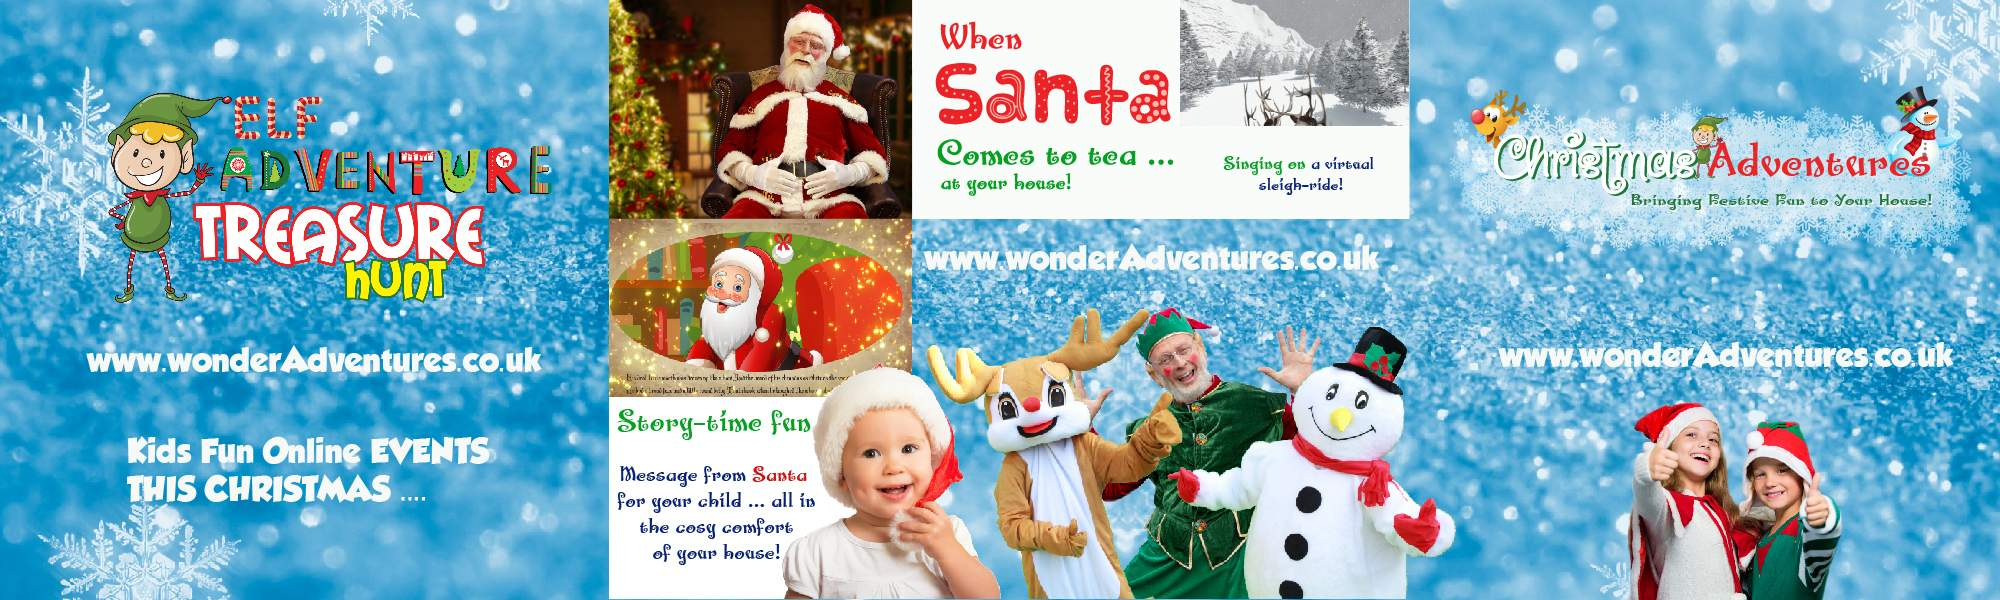 Toys & Games FAMILY PASS MEMBERS ONLY:  Virtual Santa Experience; LIVE Christmas Activities, Treasure Hunt Fun and Christmas Eve Show 20% off